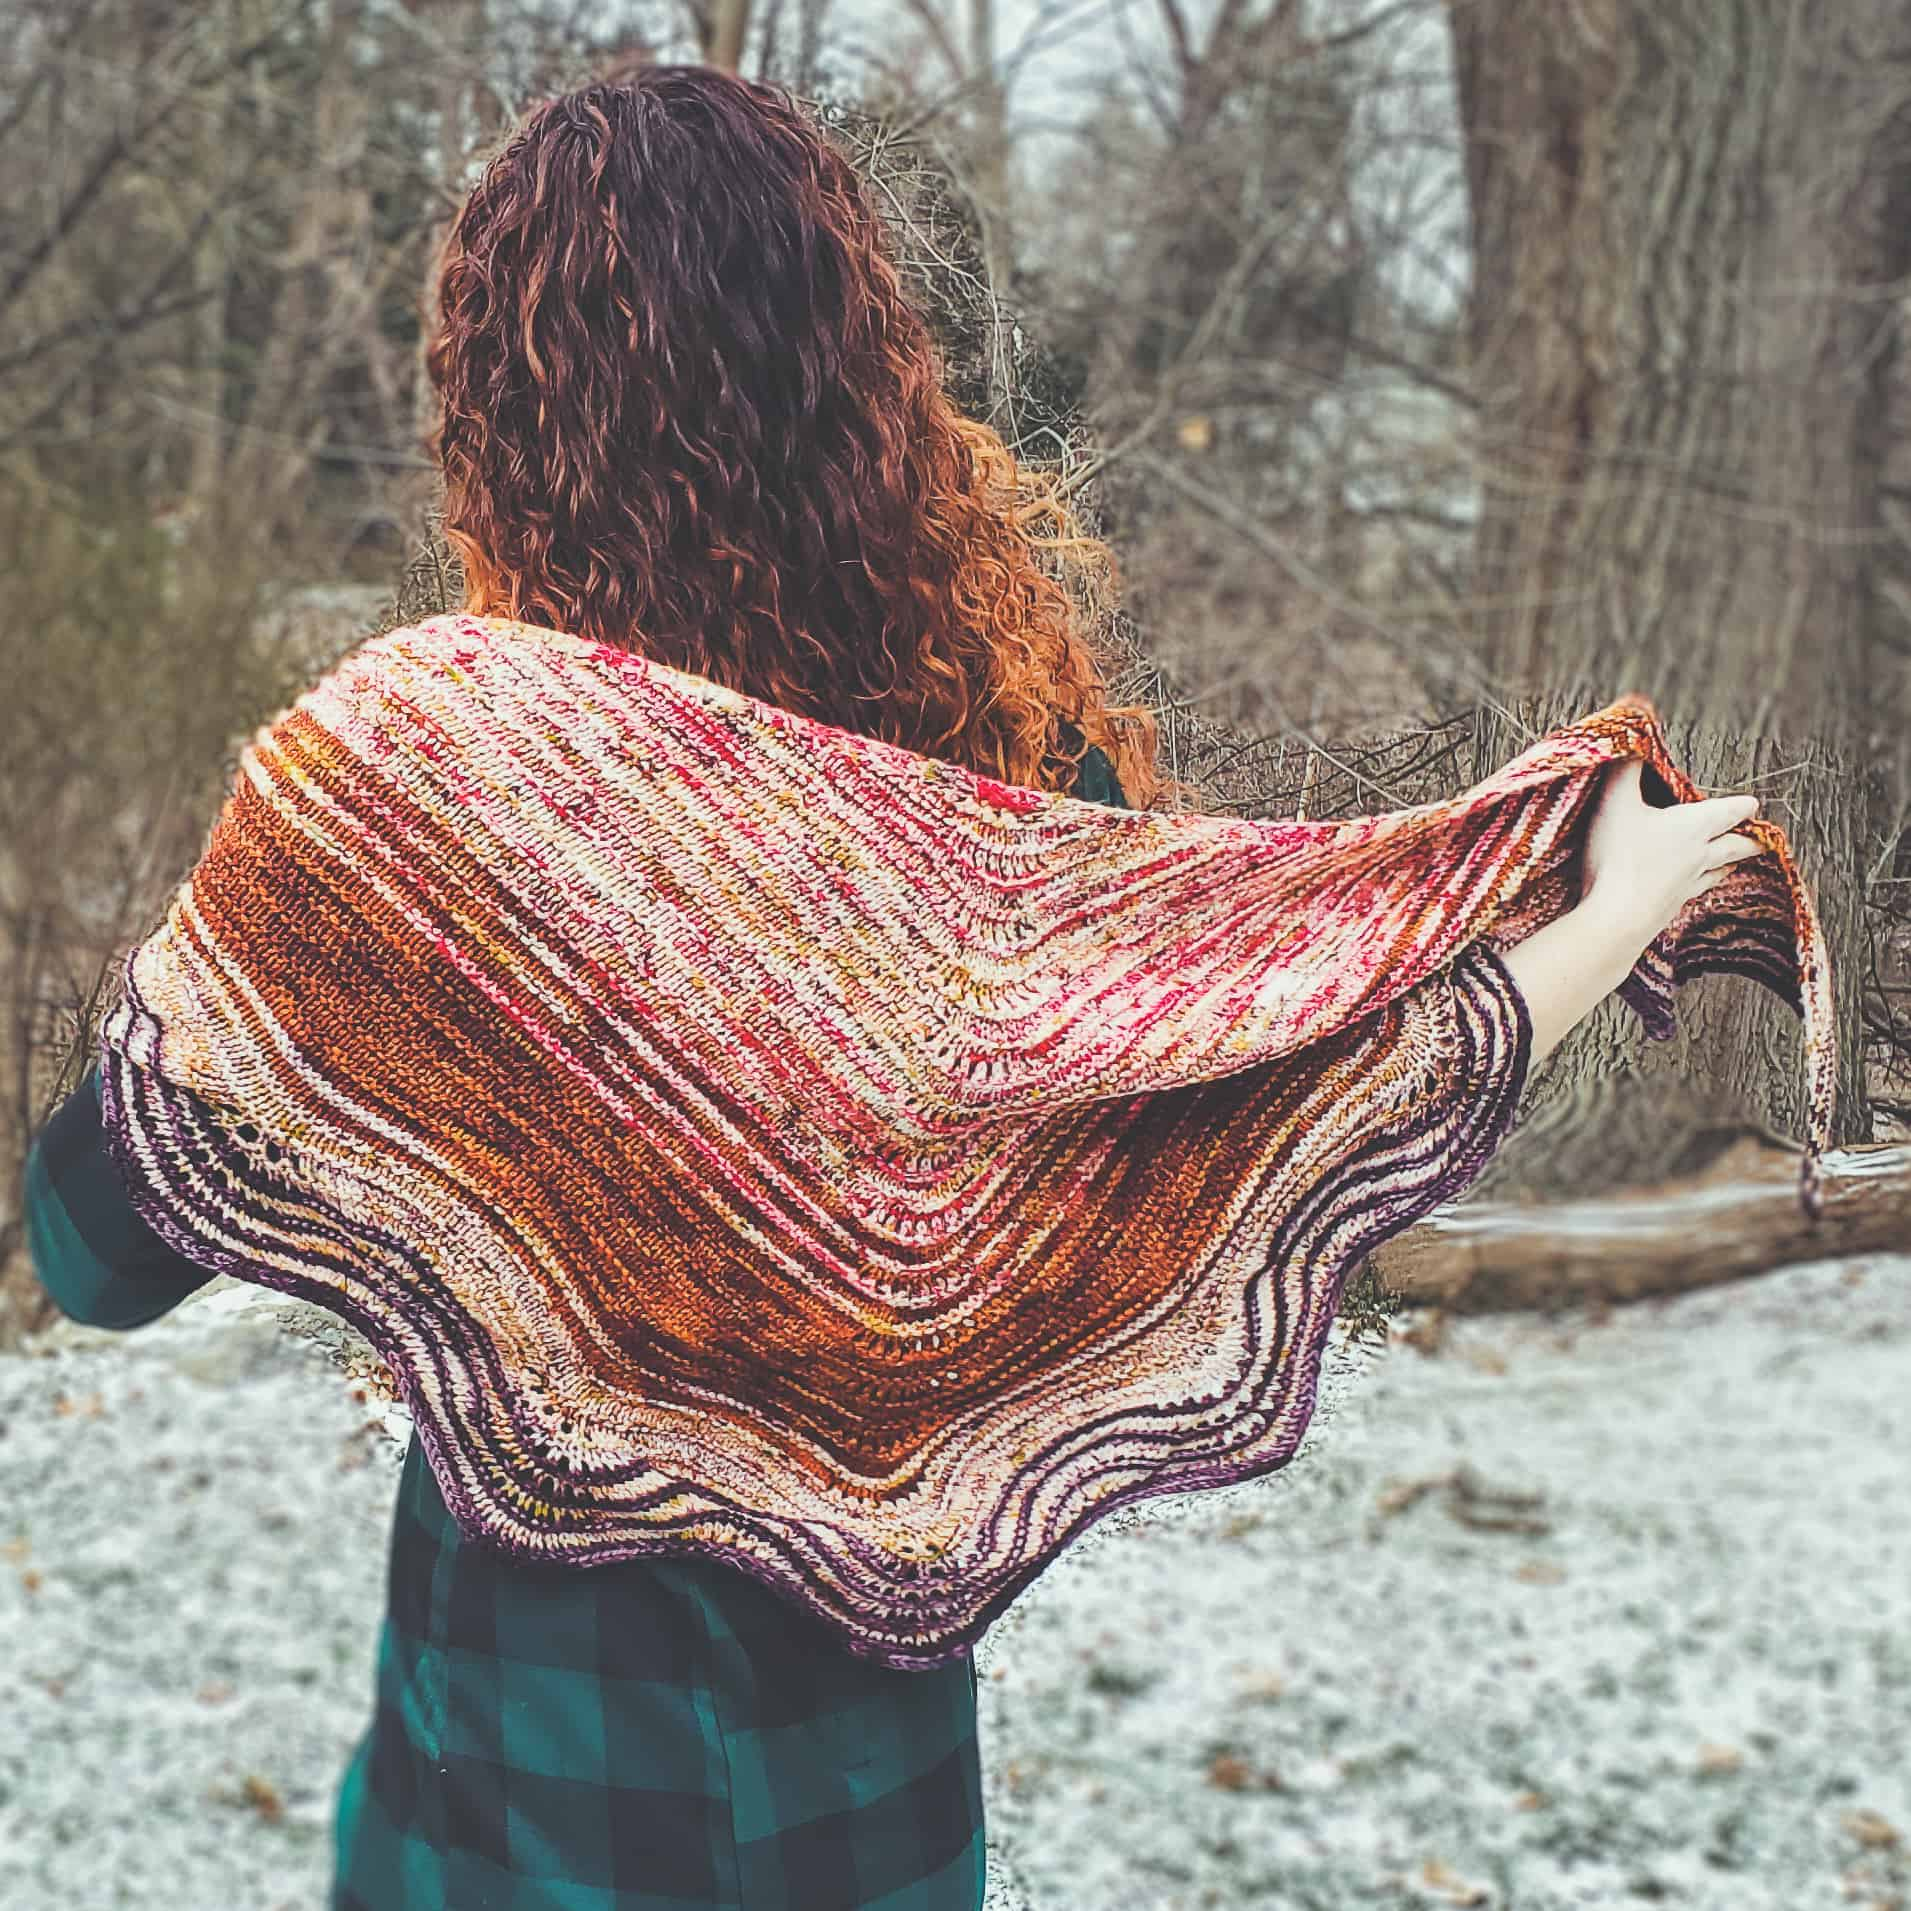 A pink and red shawl.